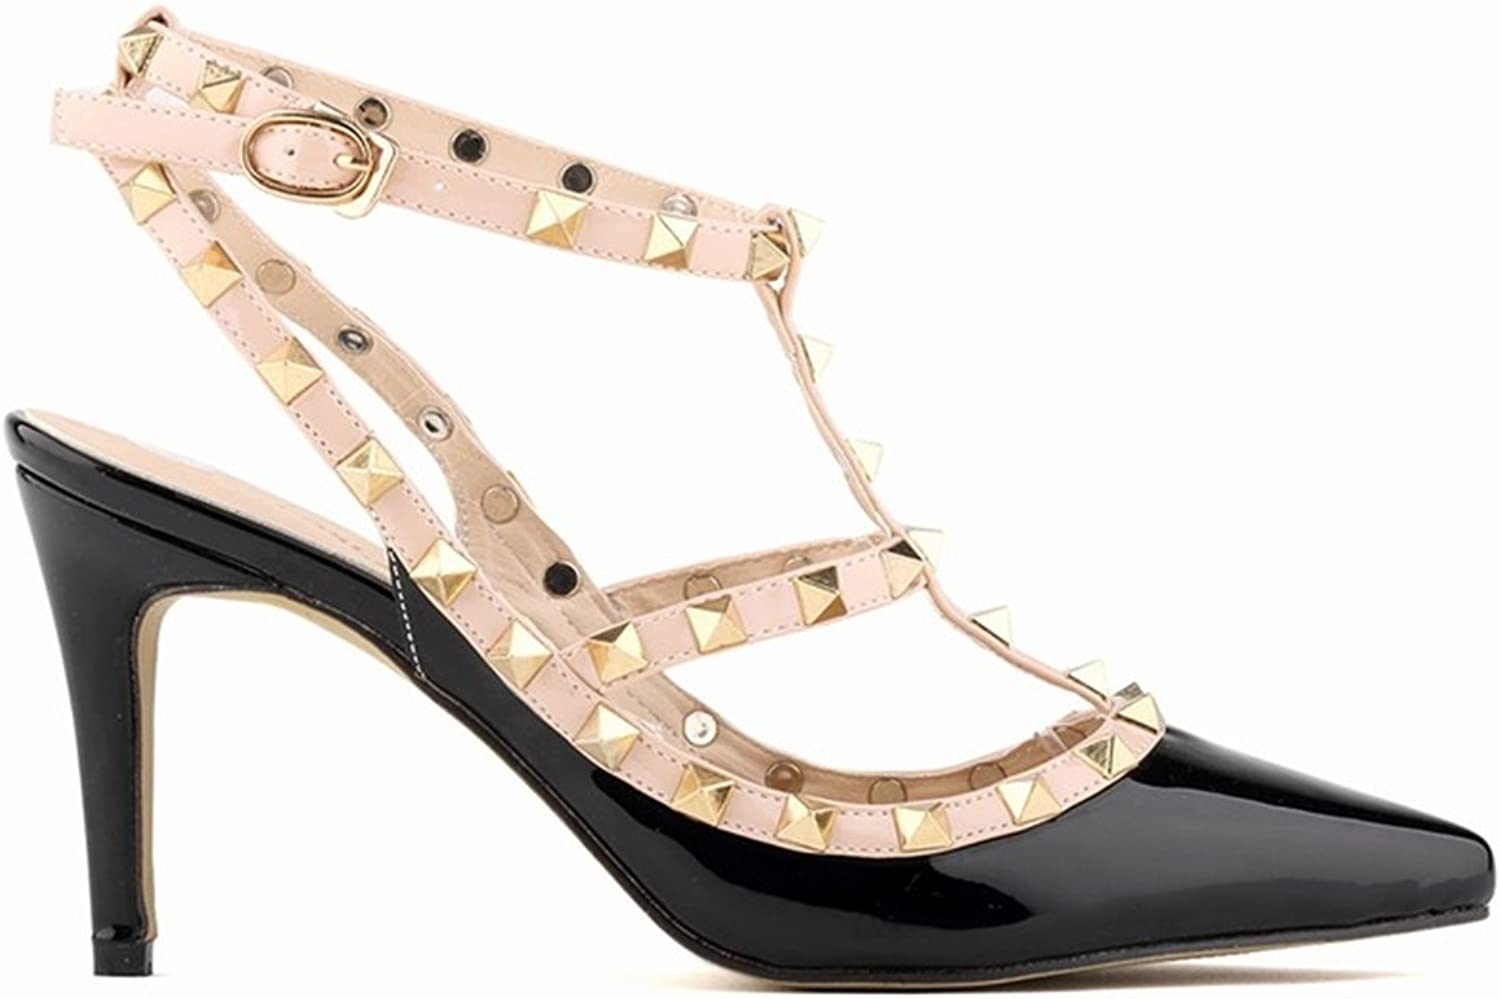 24XOmx55S99 Womens Pointy Toe gold Stud Strappy Ankle T-Strap Stiletto Heel Pump Sandal